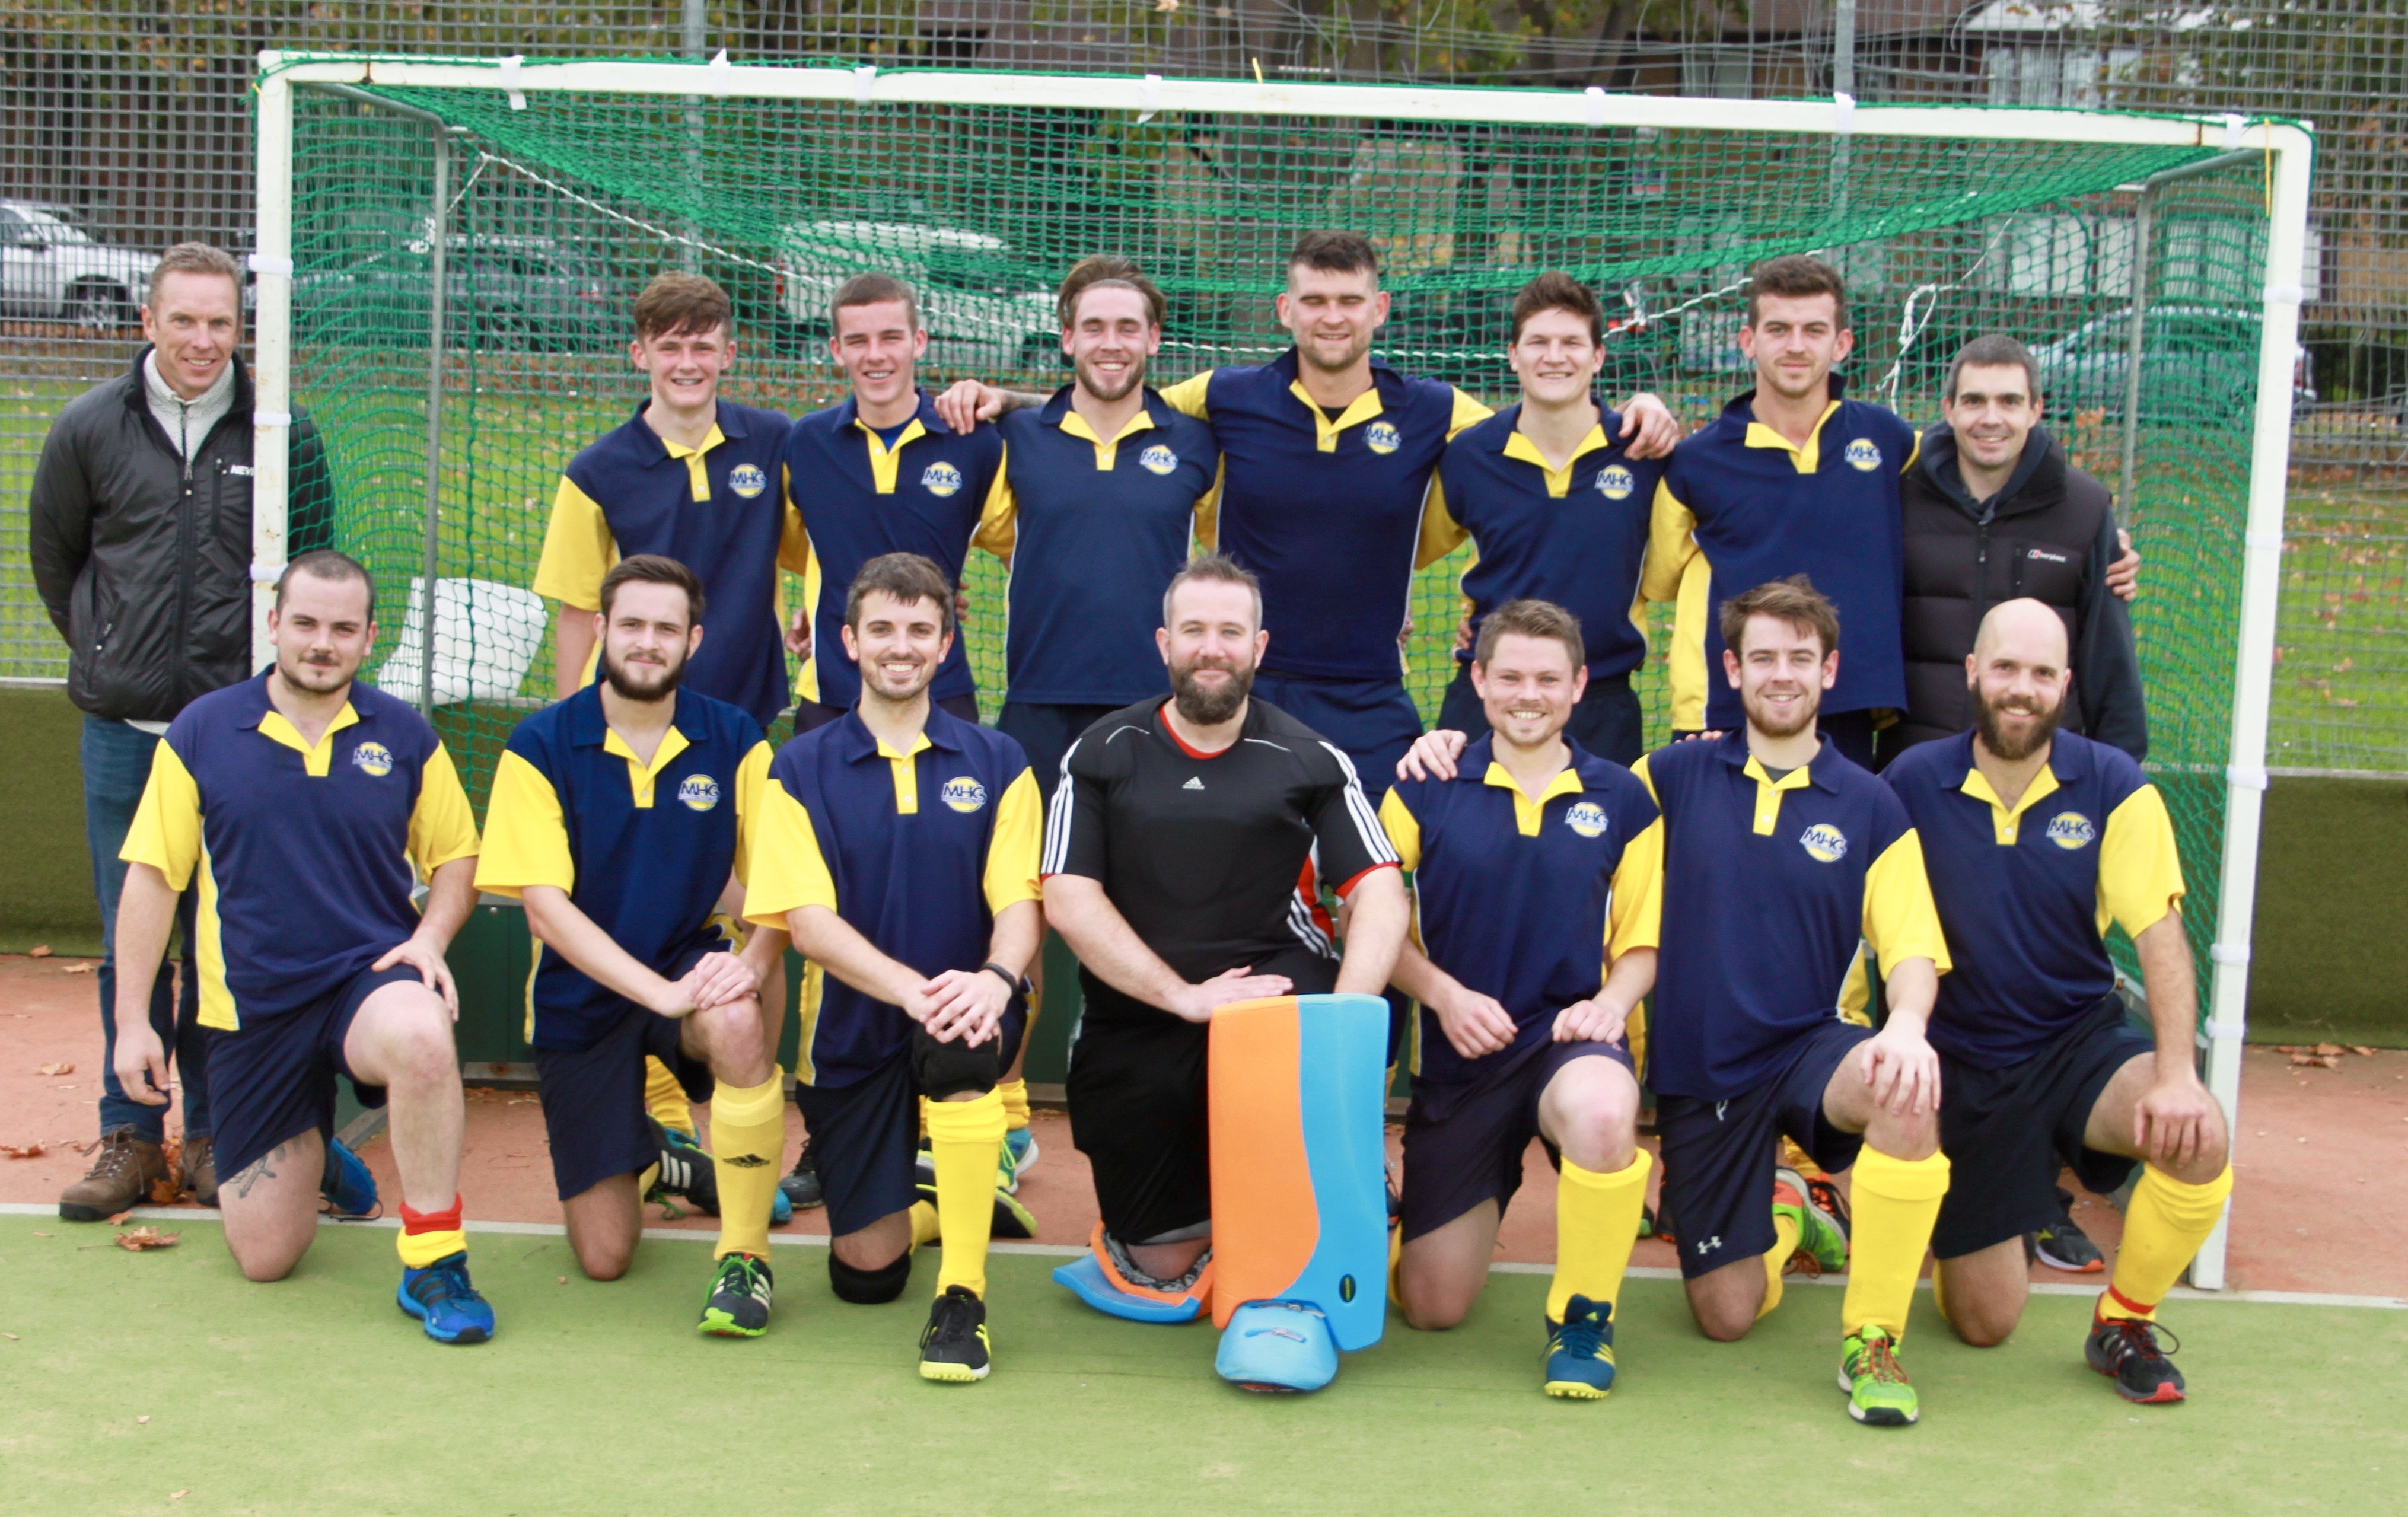 Maidstone Hockey Club teams